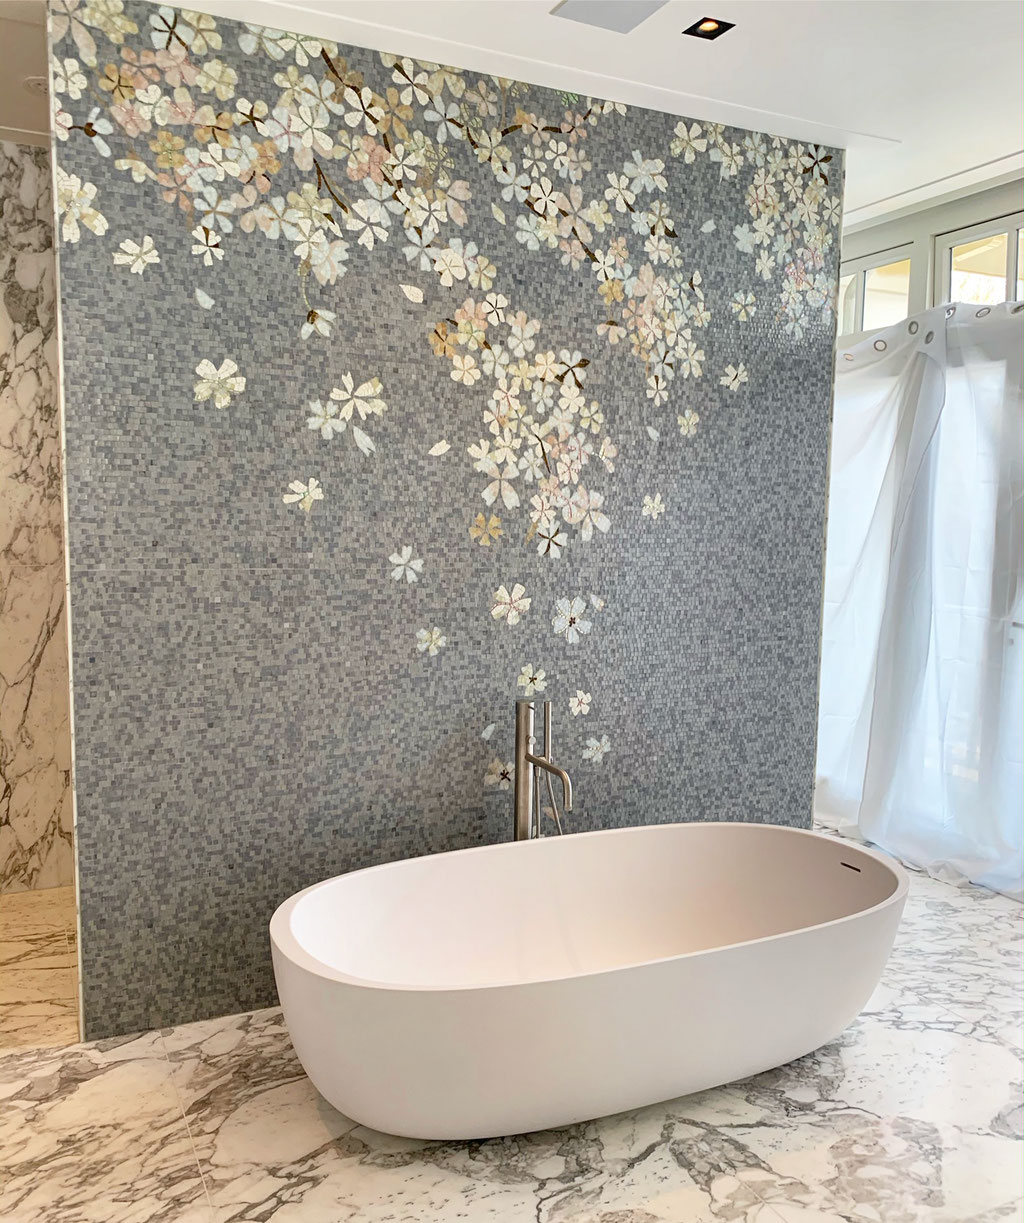 Calacatta marble combined with glass mosaic